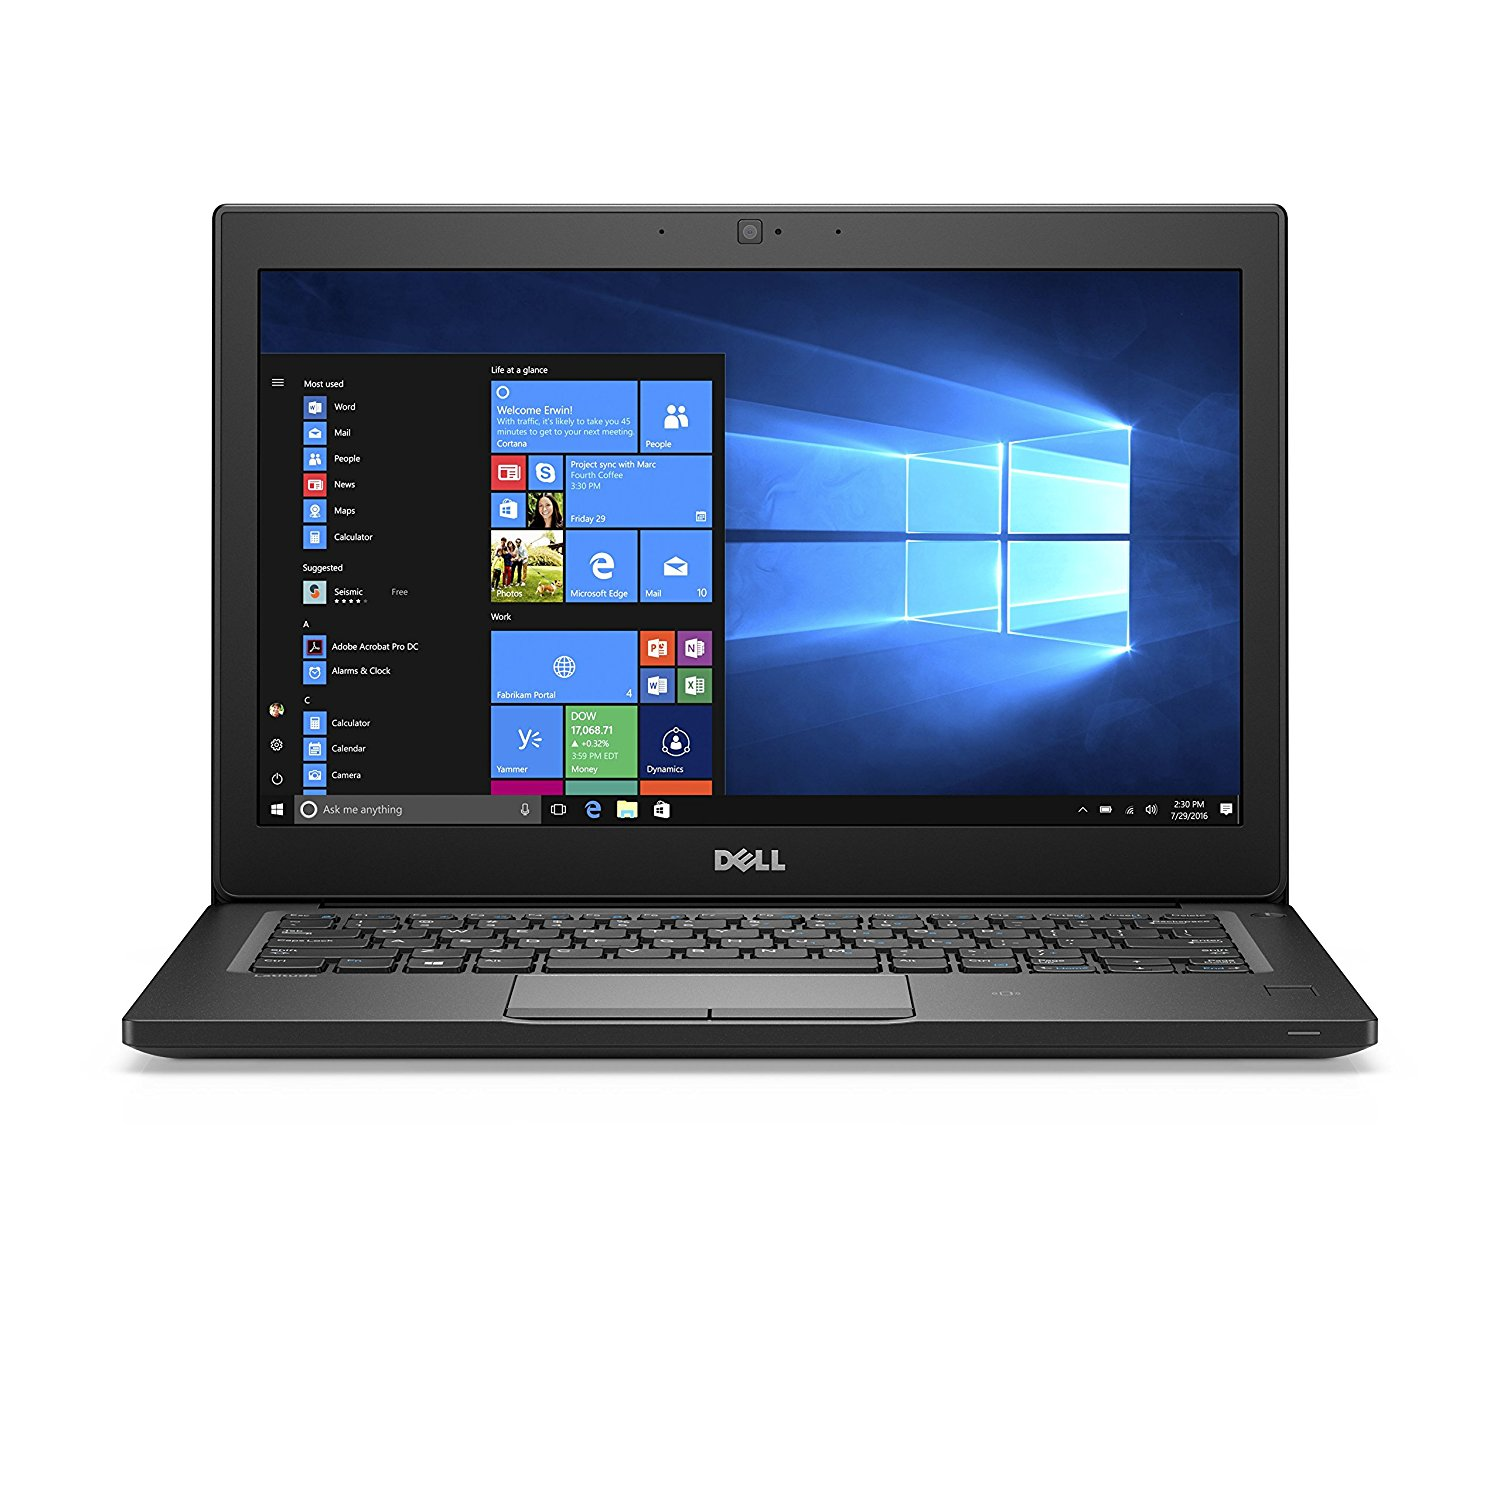 Ultrabook Dell Latitude 7280 12.5 Full HD Intel Core i7-7600U RAM 16GB SSD 512GB Windows 10 Pro